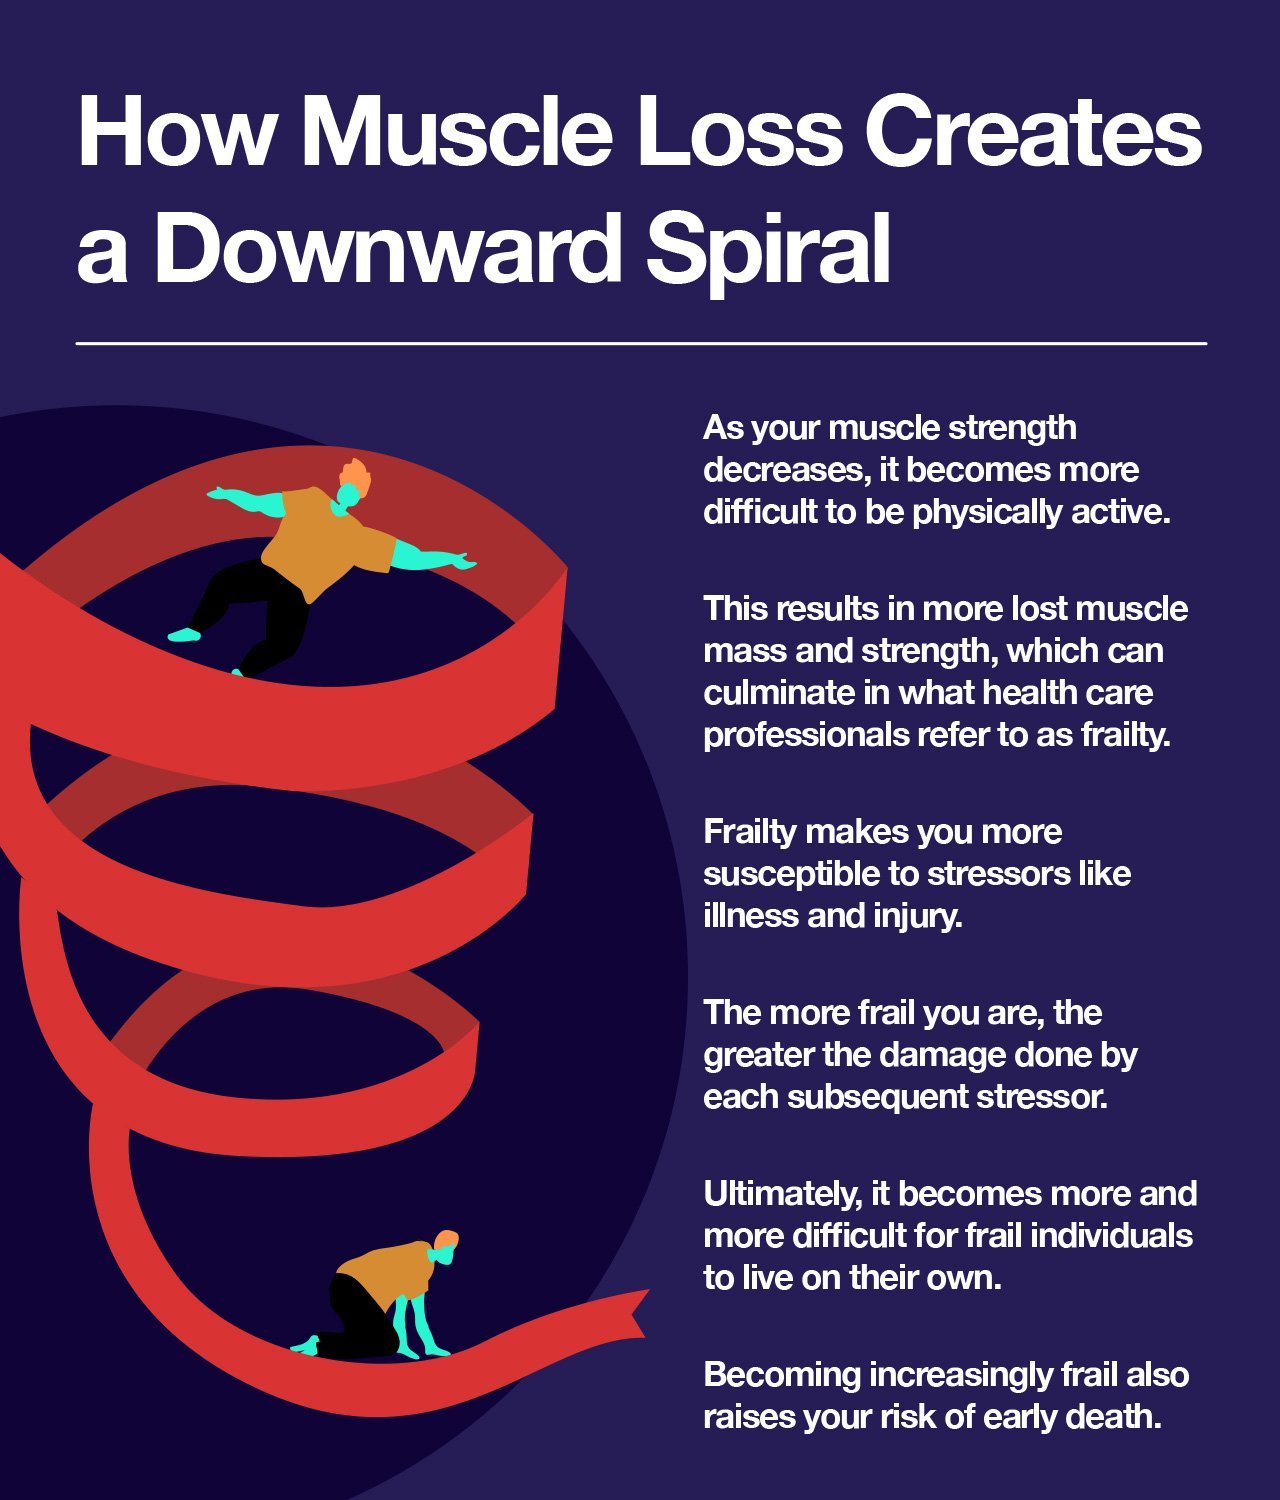 How Muscle Loss Creates a Downward Spiral